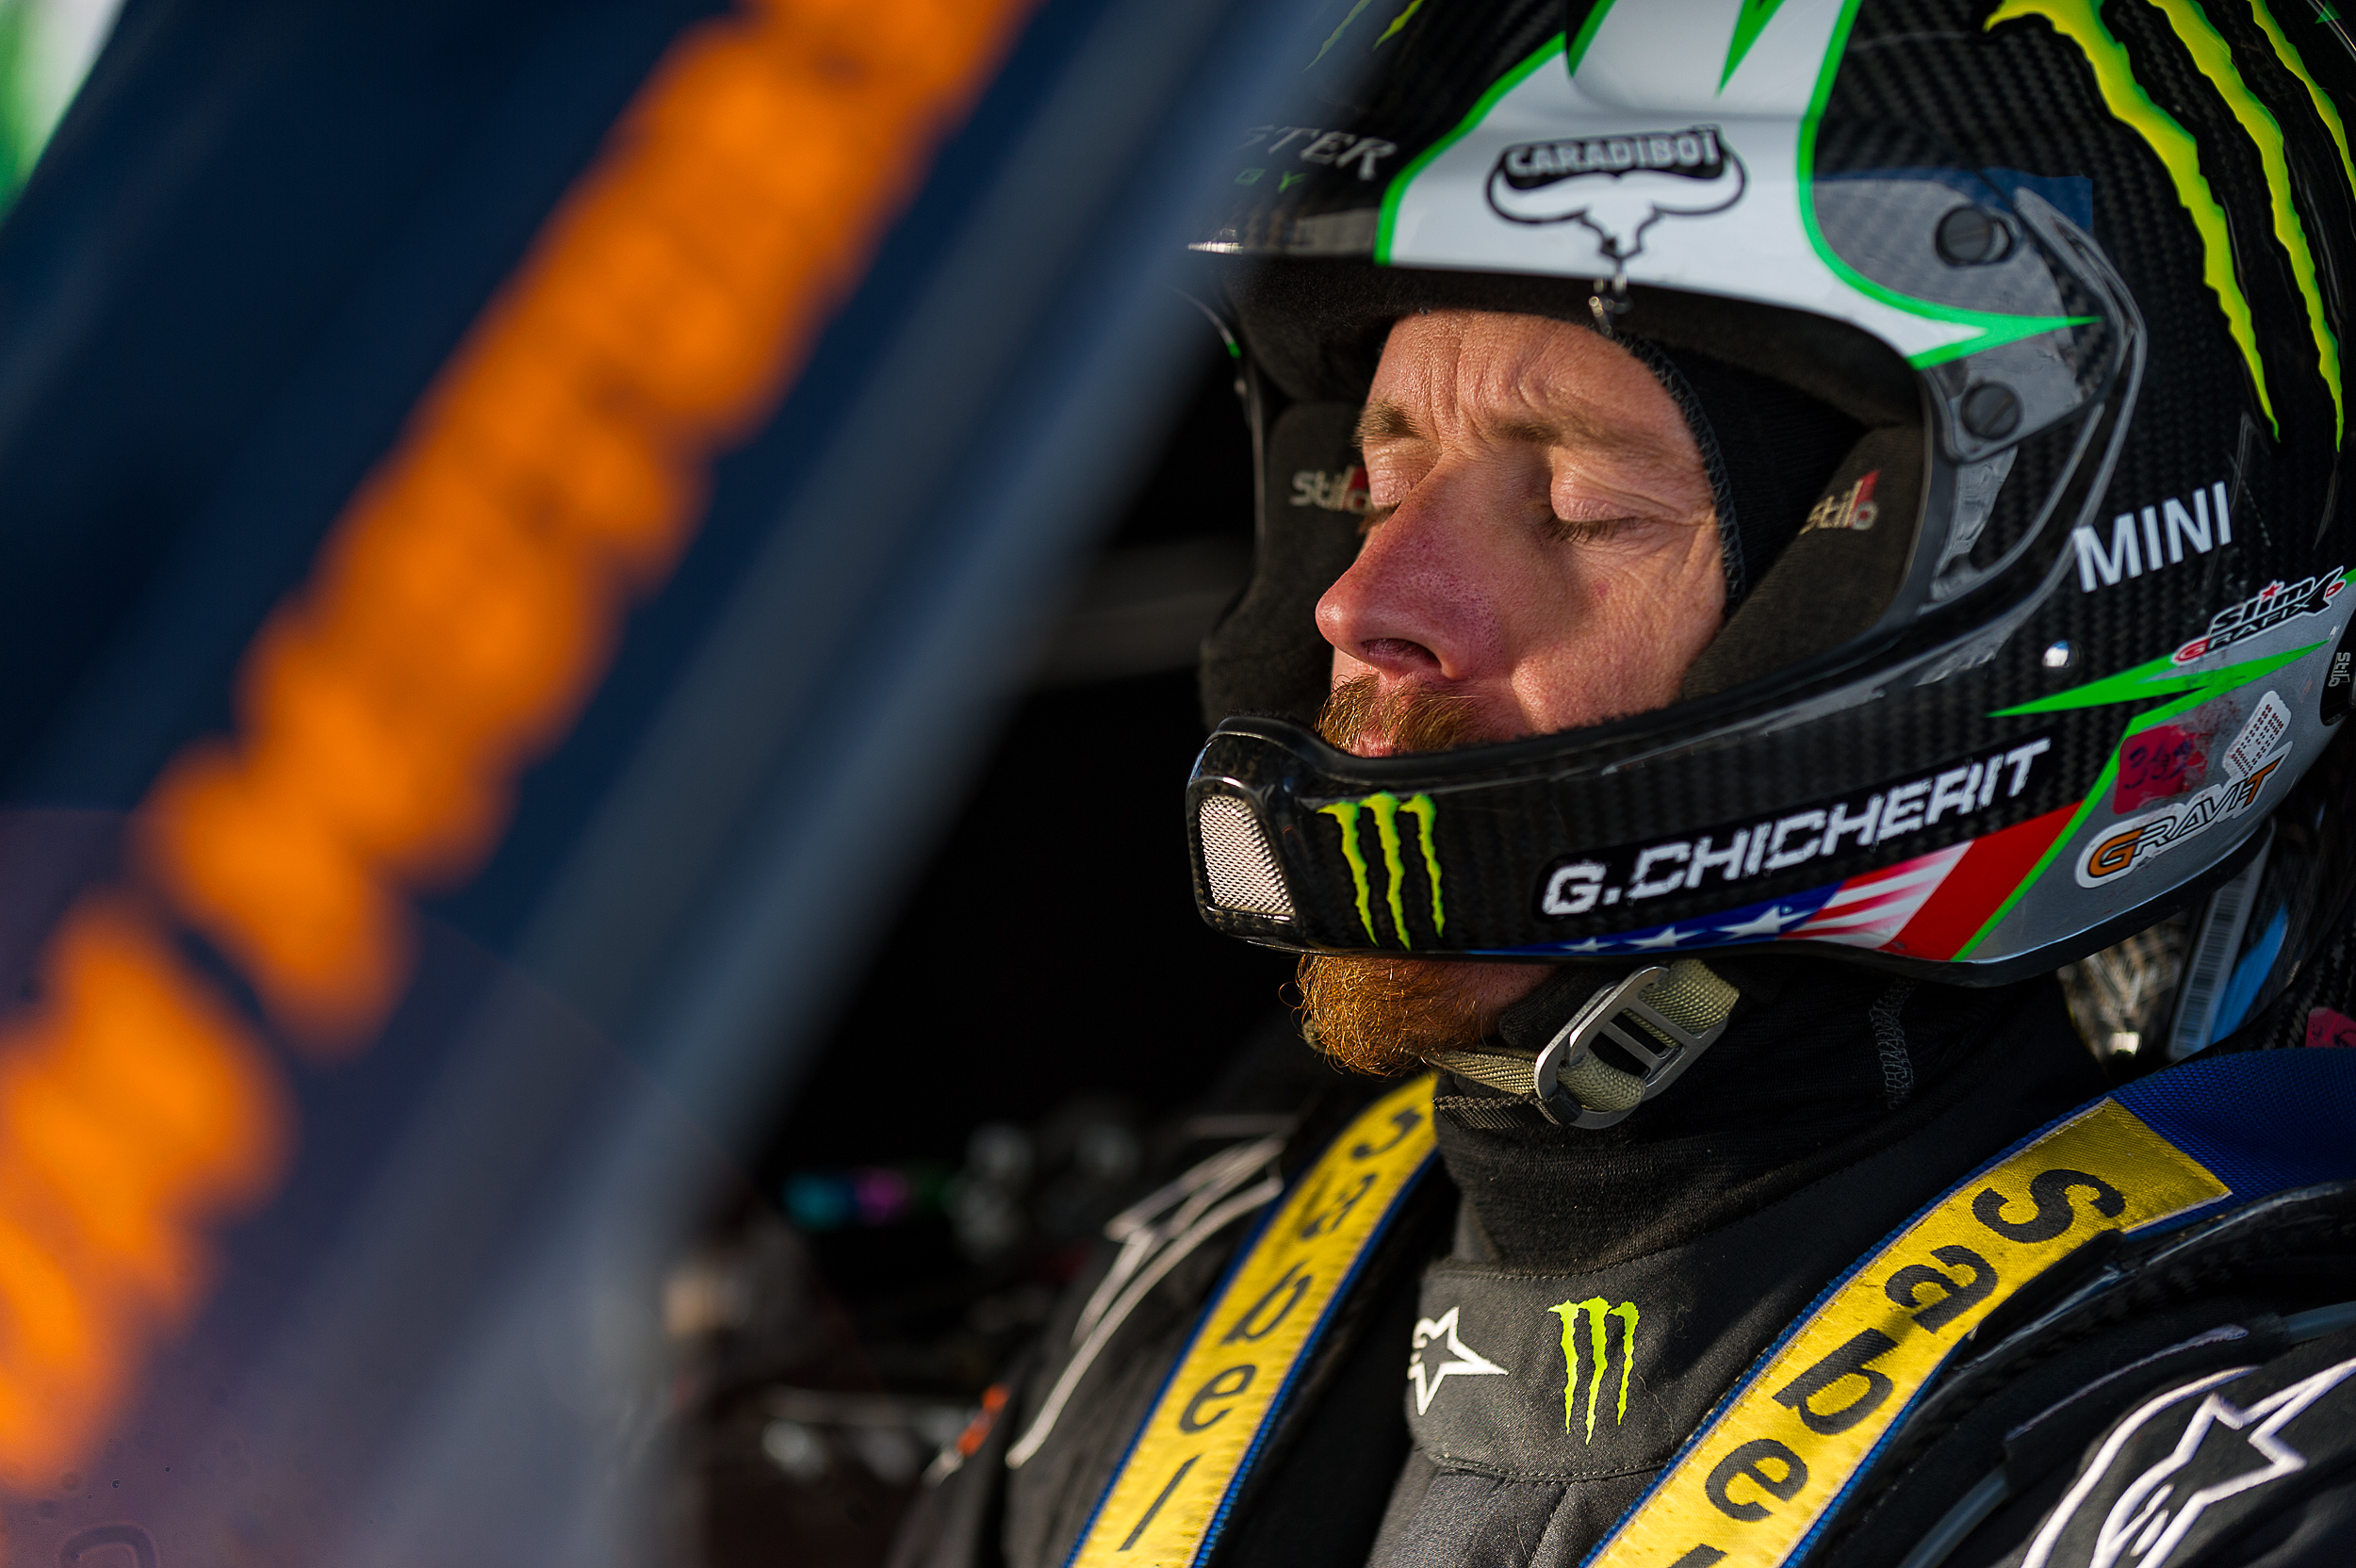 Guerlain Chicherit, MINI et Monster Energy s'attaquent à la tentative du plus long saut du monde